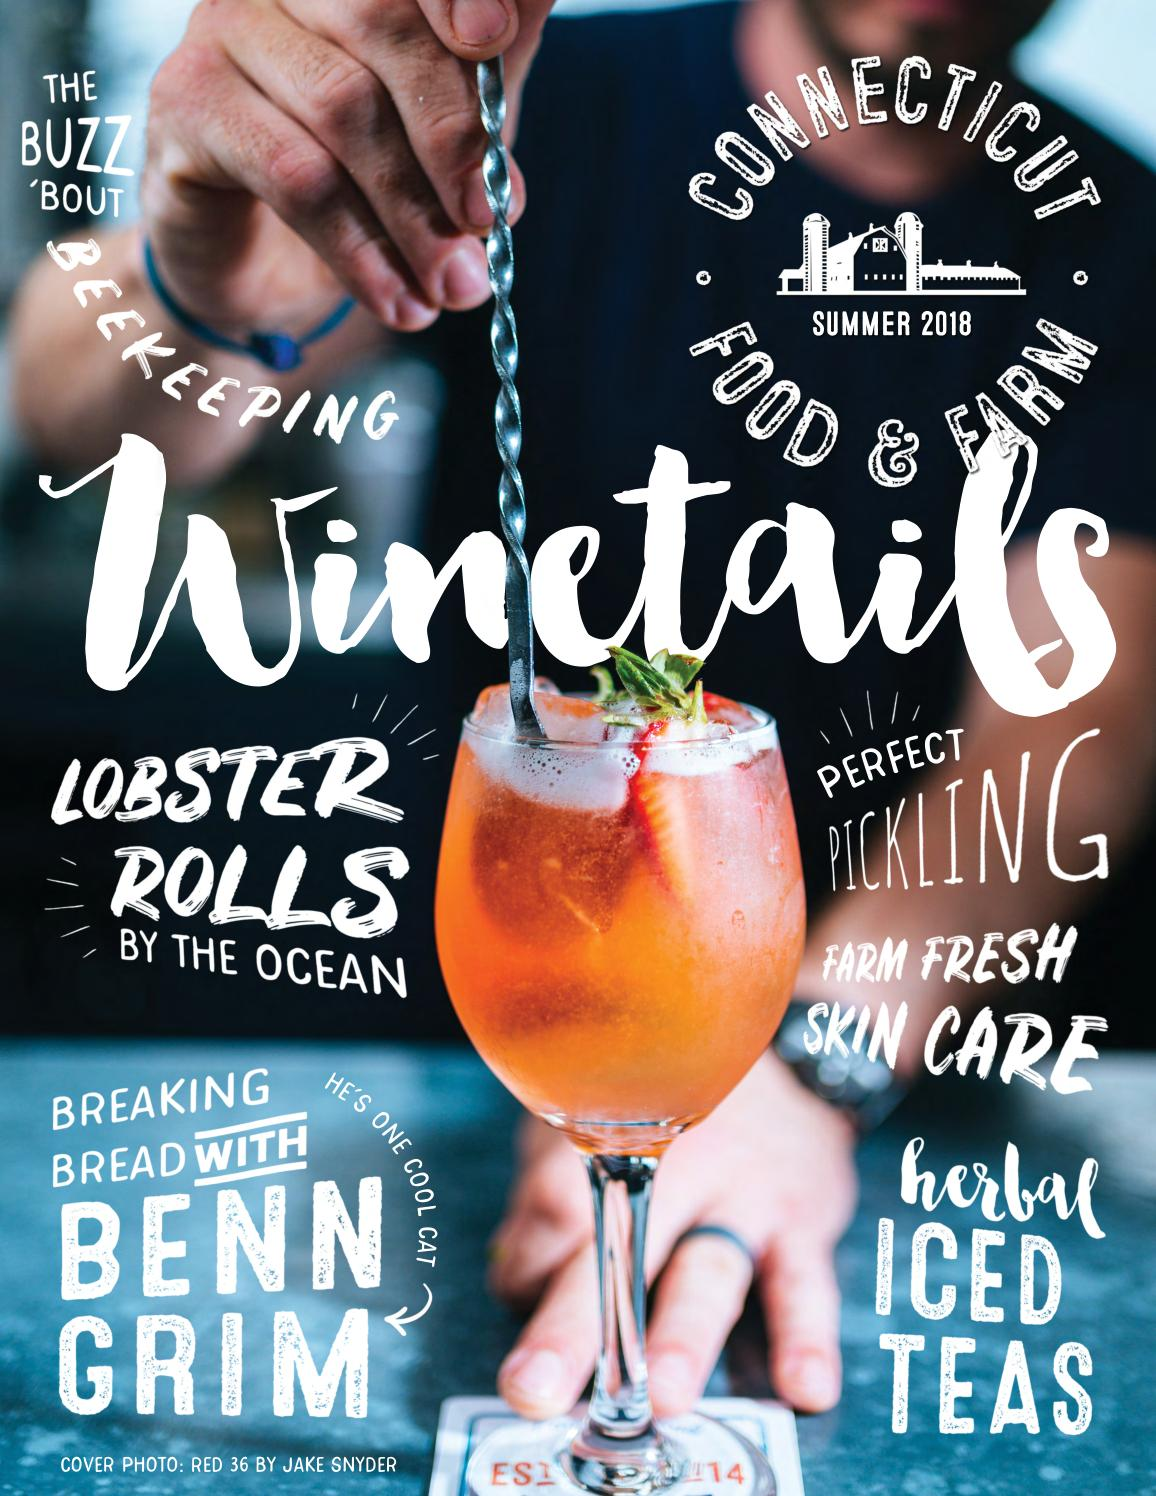 Connecticut Food Farm Magazine Summer 2018 Volume 13 By Austin Wedges Meagan Brown Cokelat 40 And Issuu